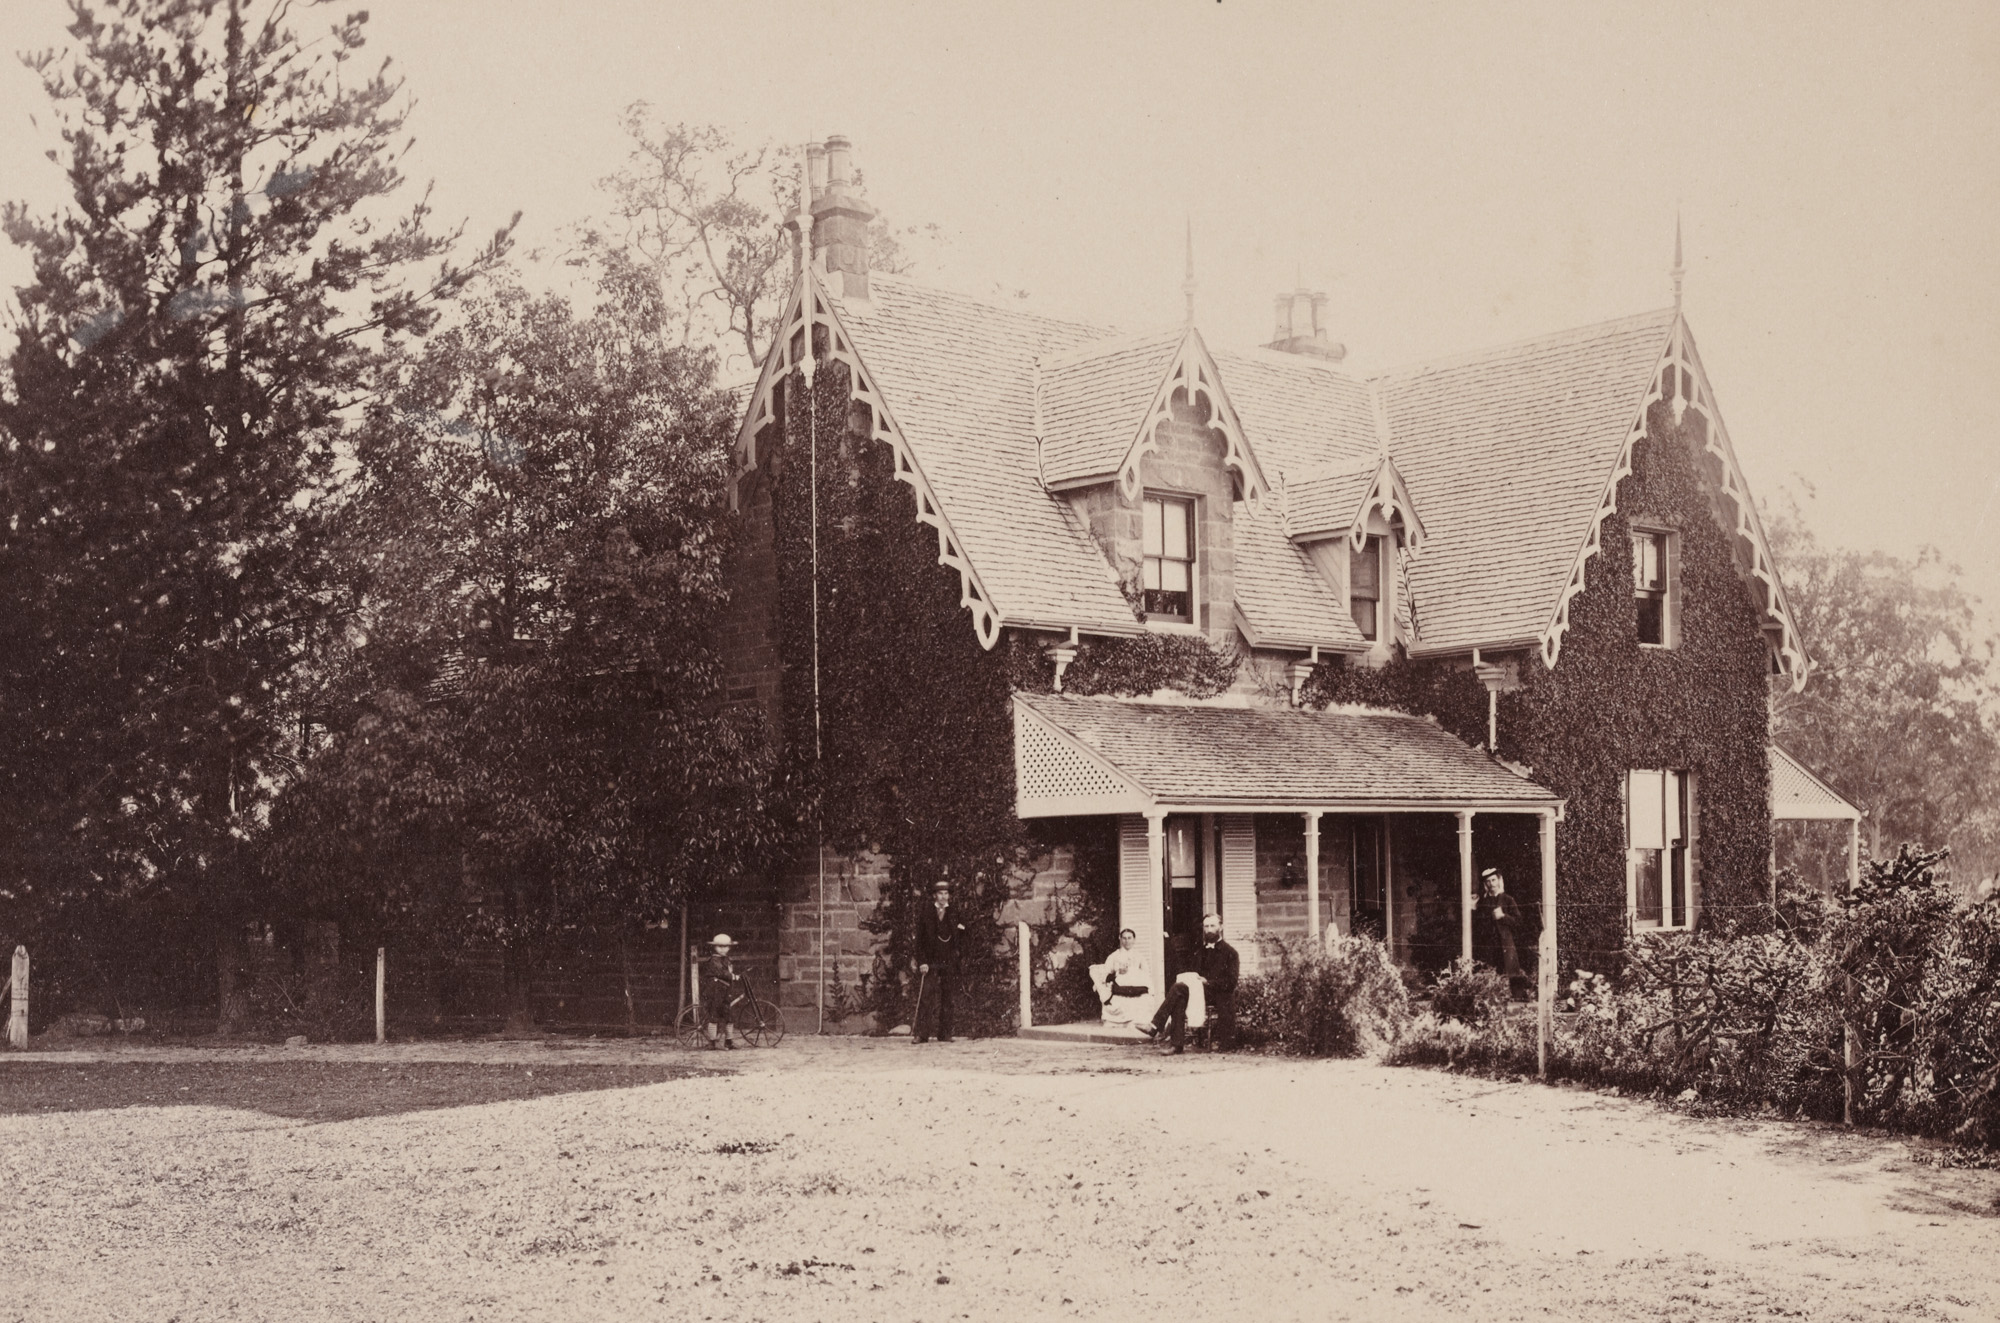 Reverend Arthur Wellesley Pain and members of his family at the Parsonage, Cobbitty, c1877 / photographer unknown